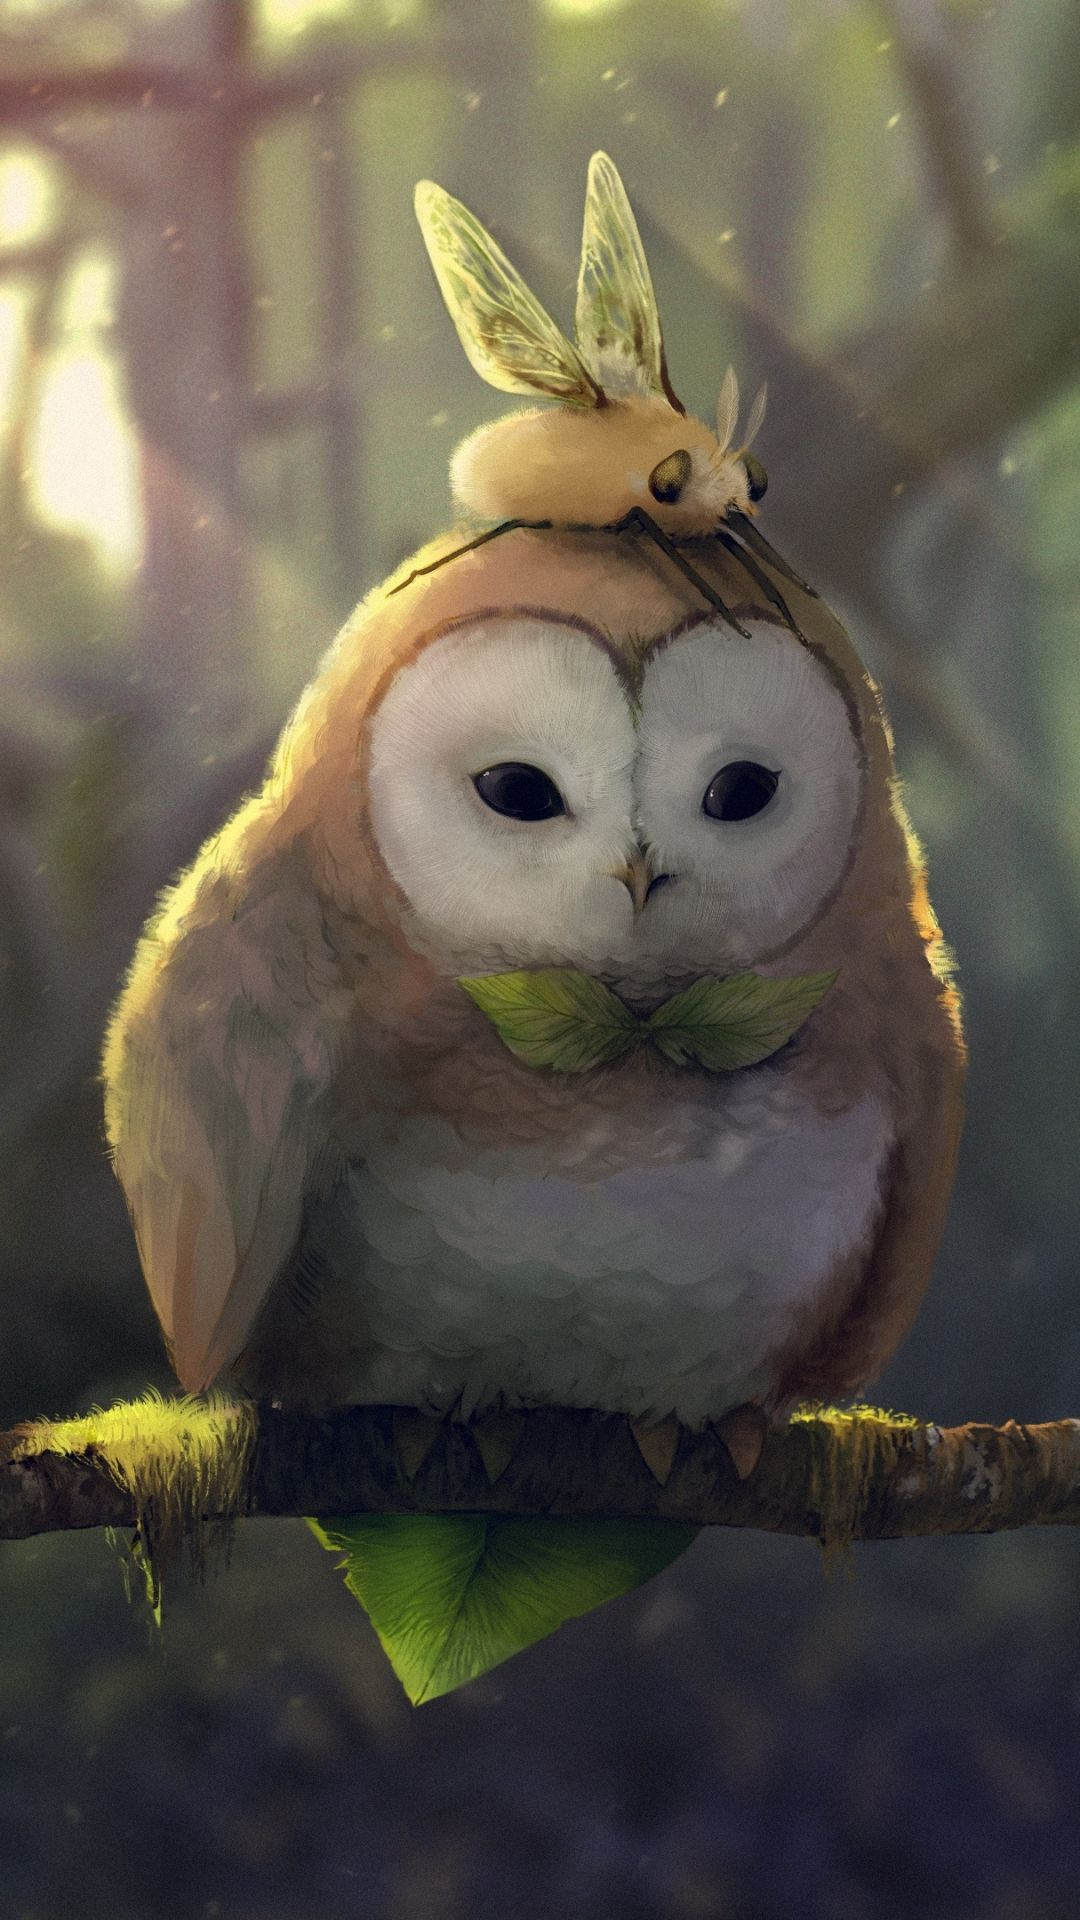 1080x1920 Fantasy / Owl (1080x1920) Mobile Wallpaper | Wallpapers For iPhone ...